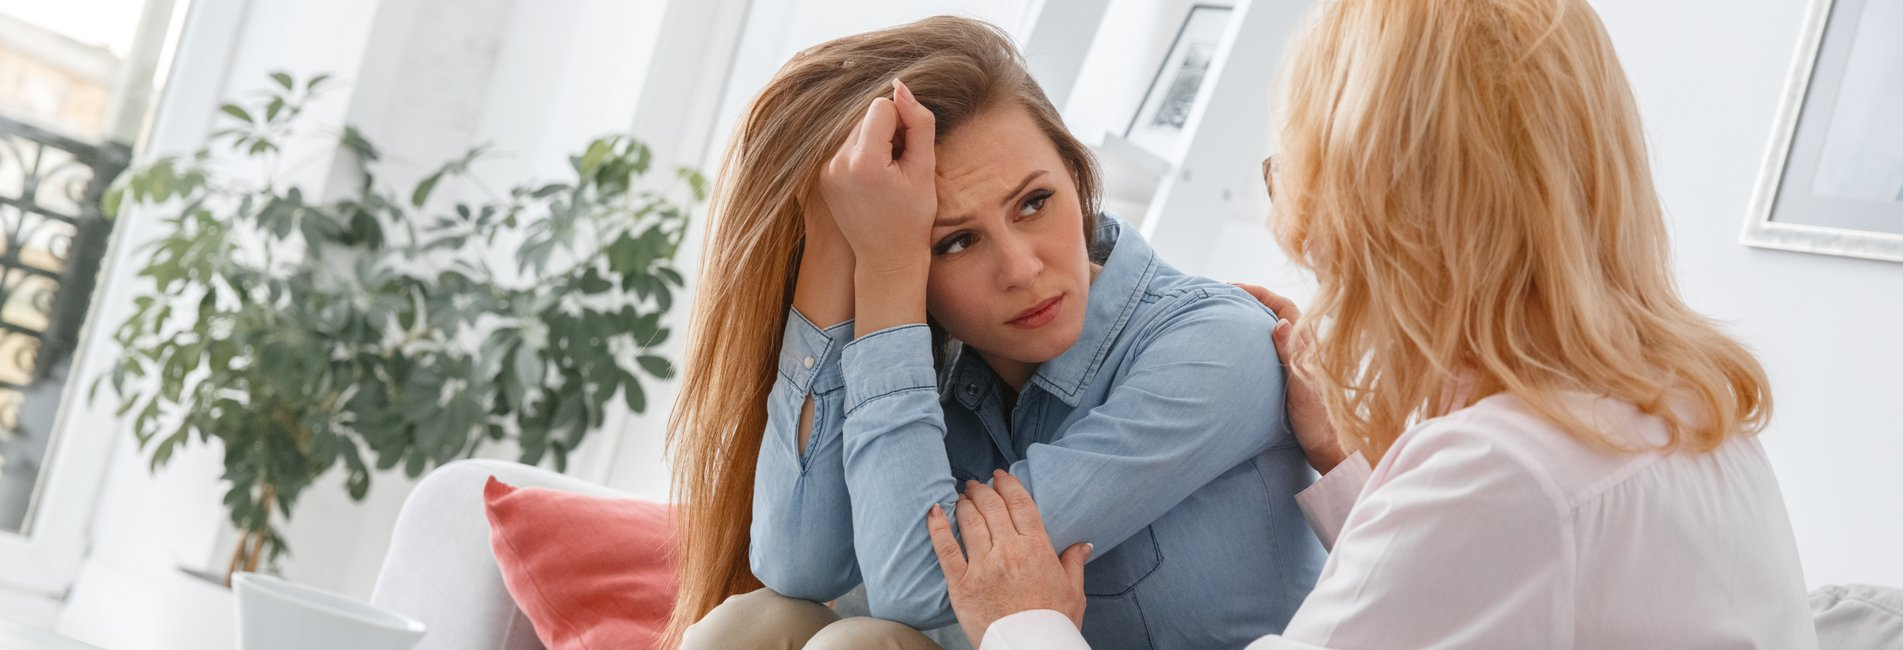 Psychodynamic Therapy for Addiction Resurgence – A woman speaks to her therapist about her addiction issues.